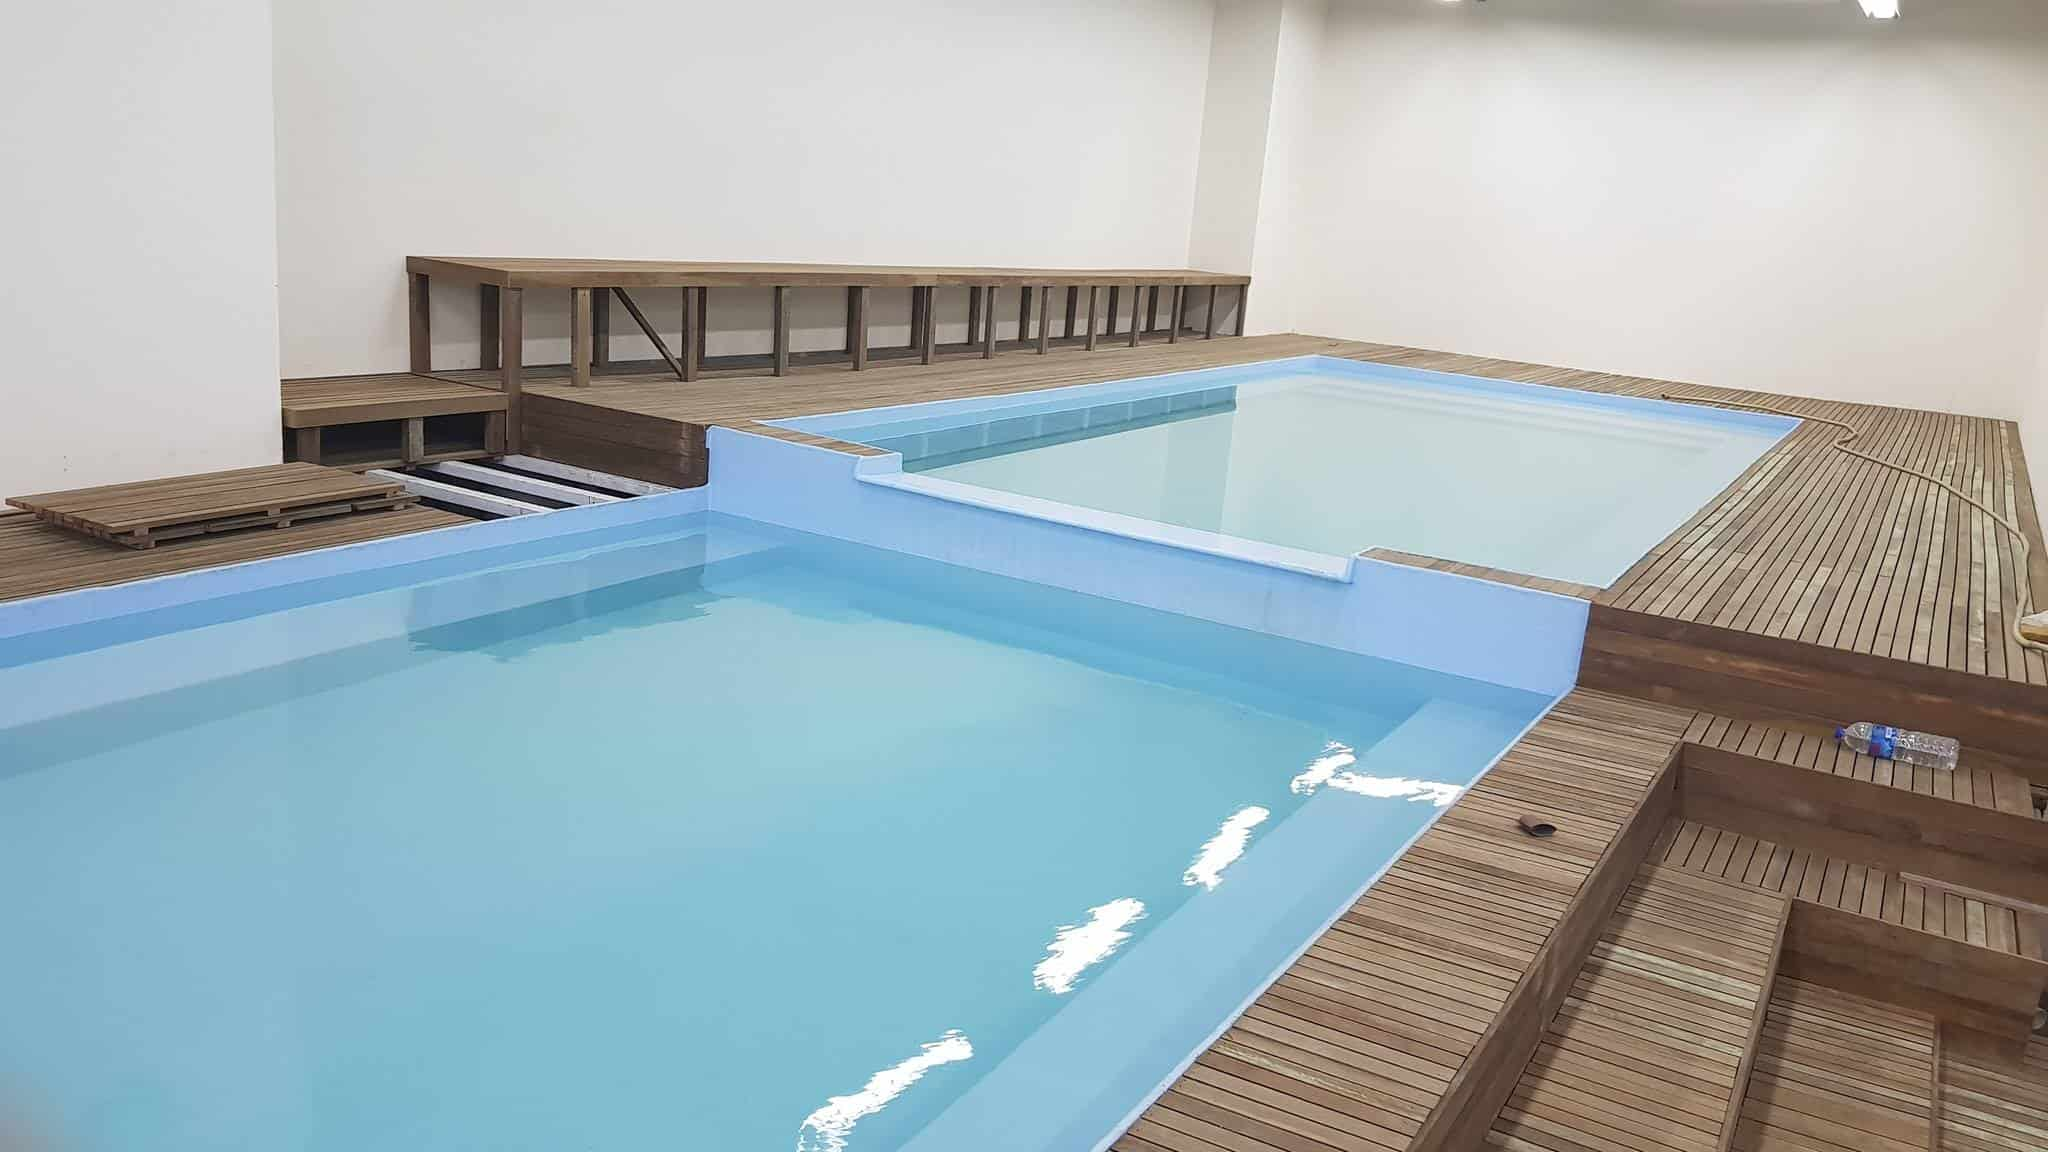 Long swimming pool at 2 different heights with seating area at the sides